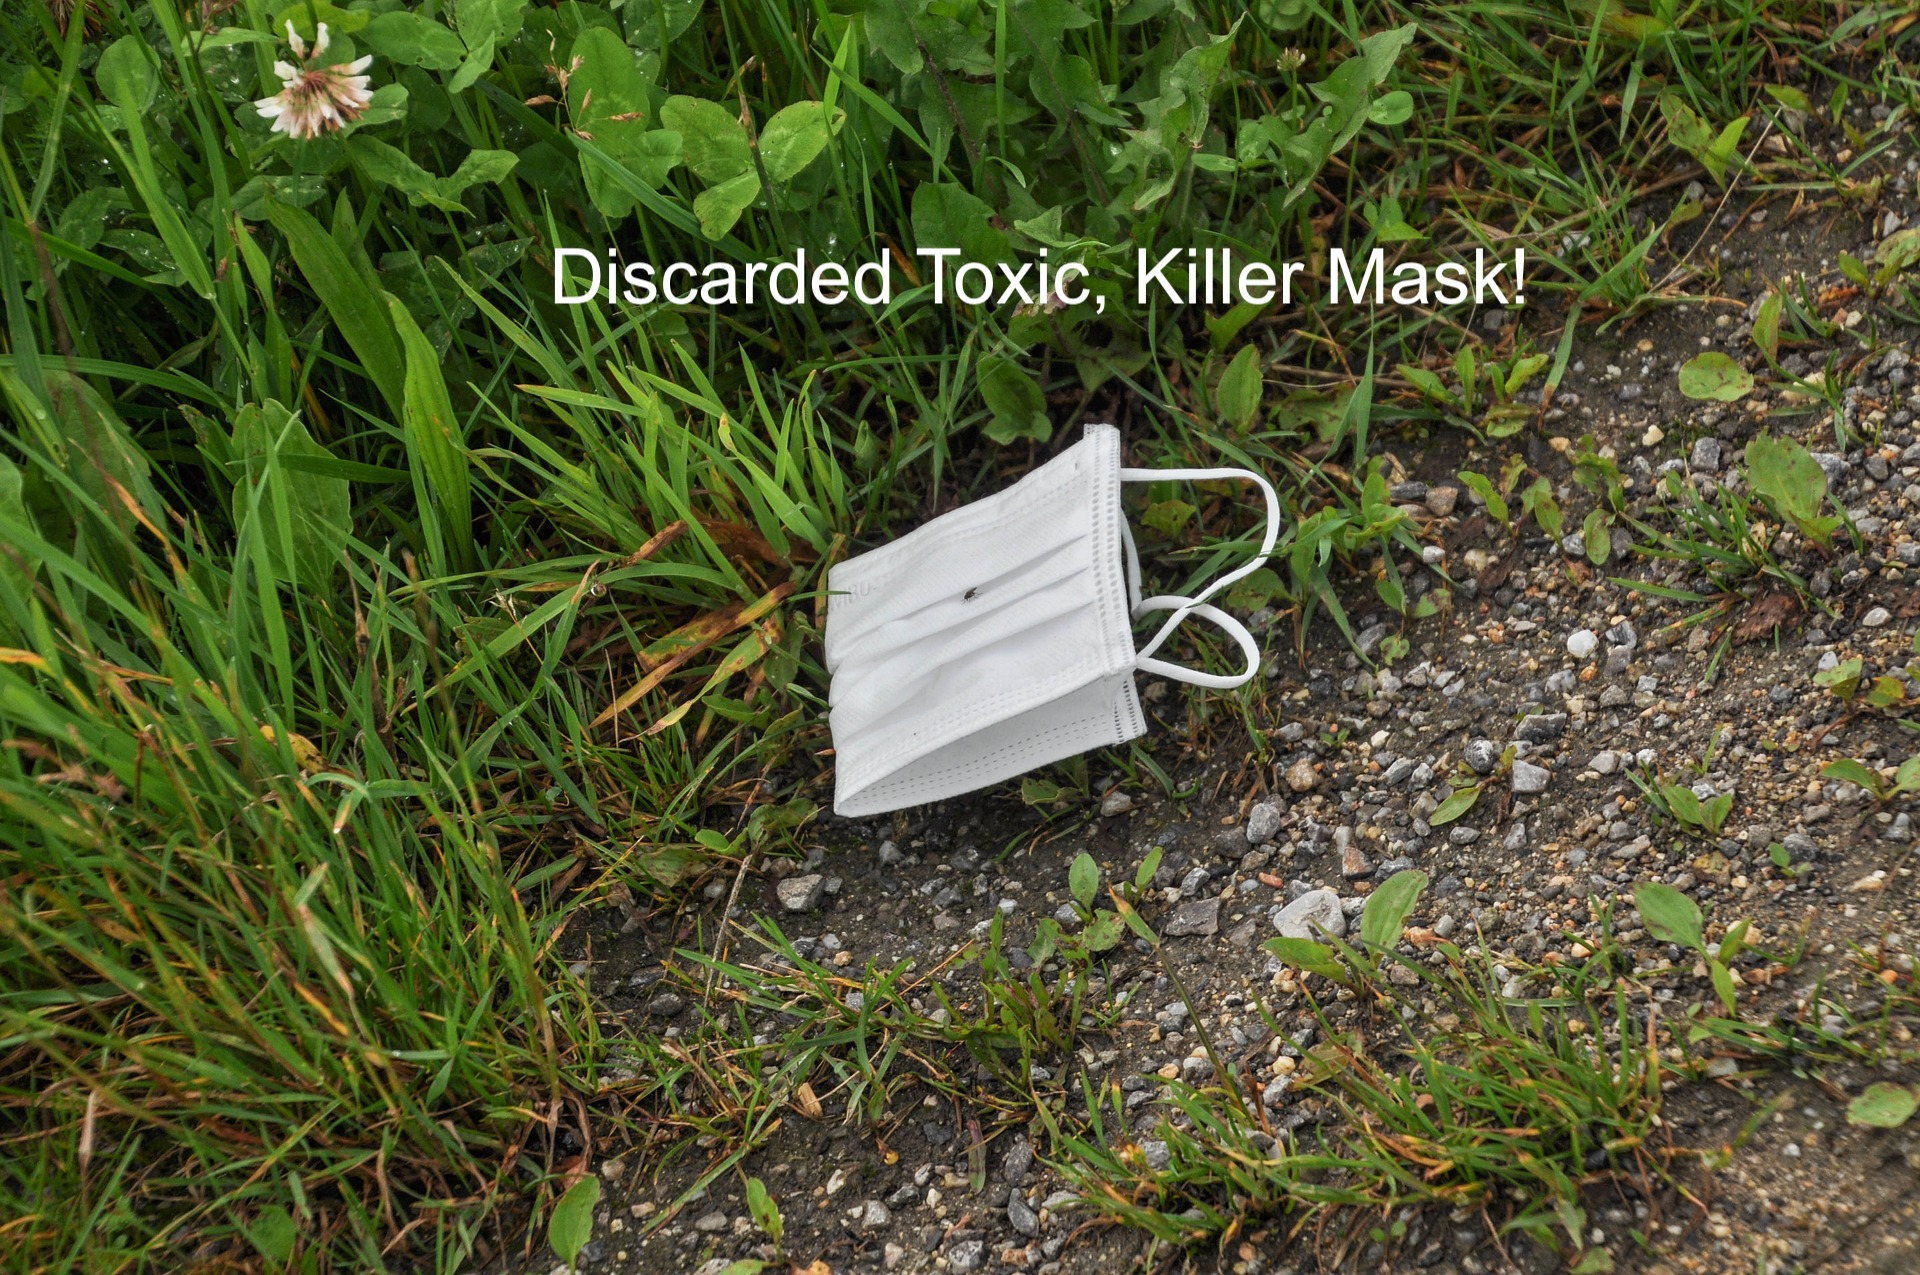 MASKHOLES ARE LITTERBUGS THROWING THEIR BIOHAZARD WASTE ON THE GROUND!